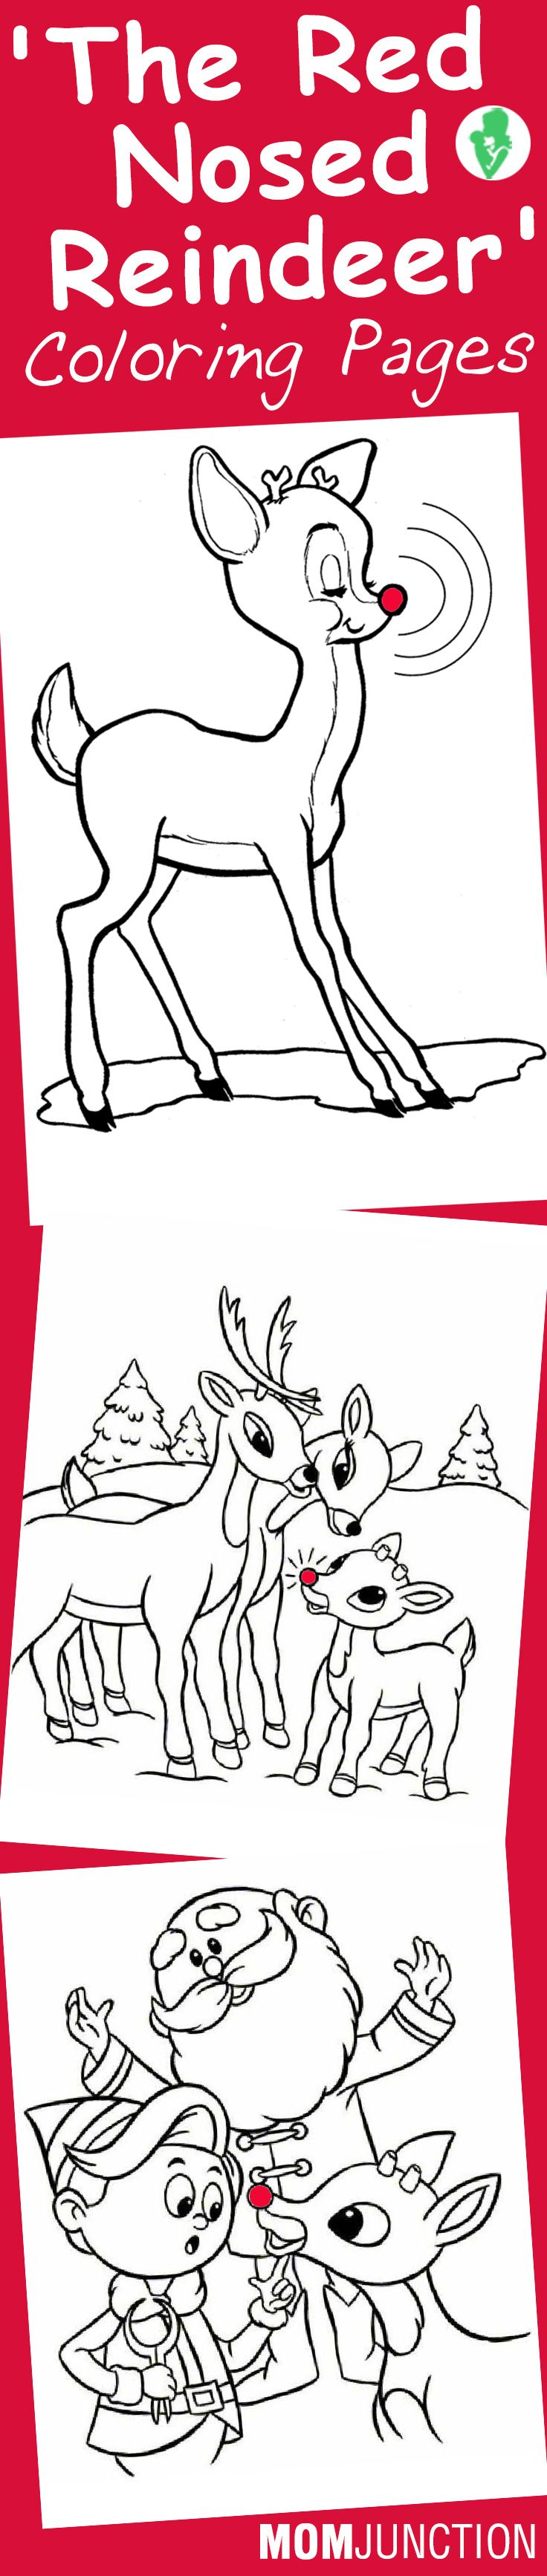 Christmas coloring pages rudolph red nosed reindeer - Top 20 Free Printable Rudolph The Red Nosed Reindeer Coloring Pages Online